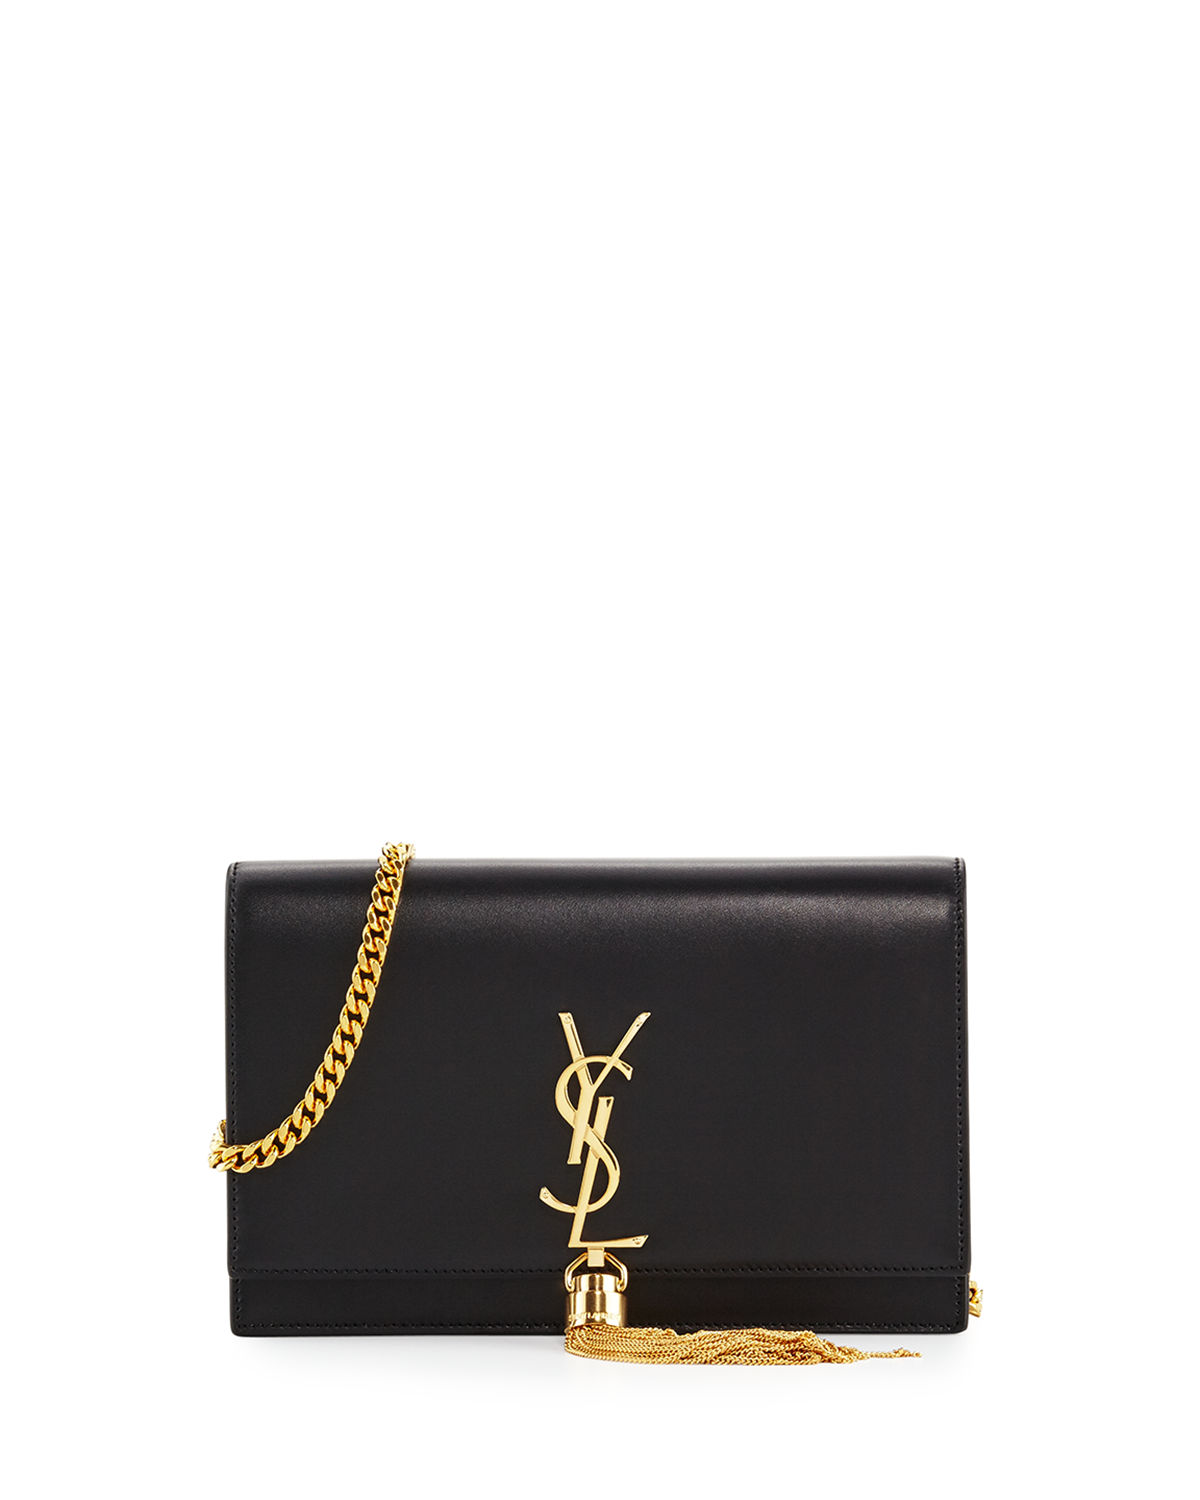 bbc90085aed Saint Laurent Kate Monogram YSL Tassel Chain Wallet | Neiman Marcus